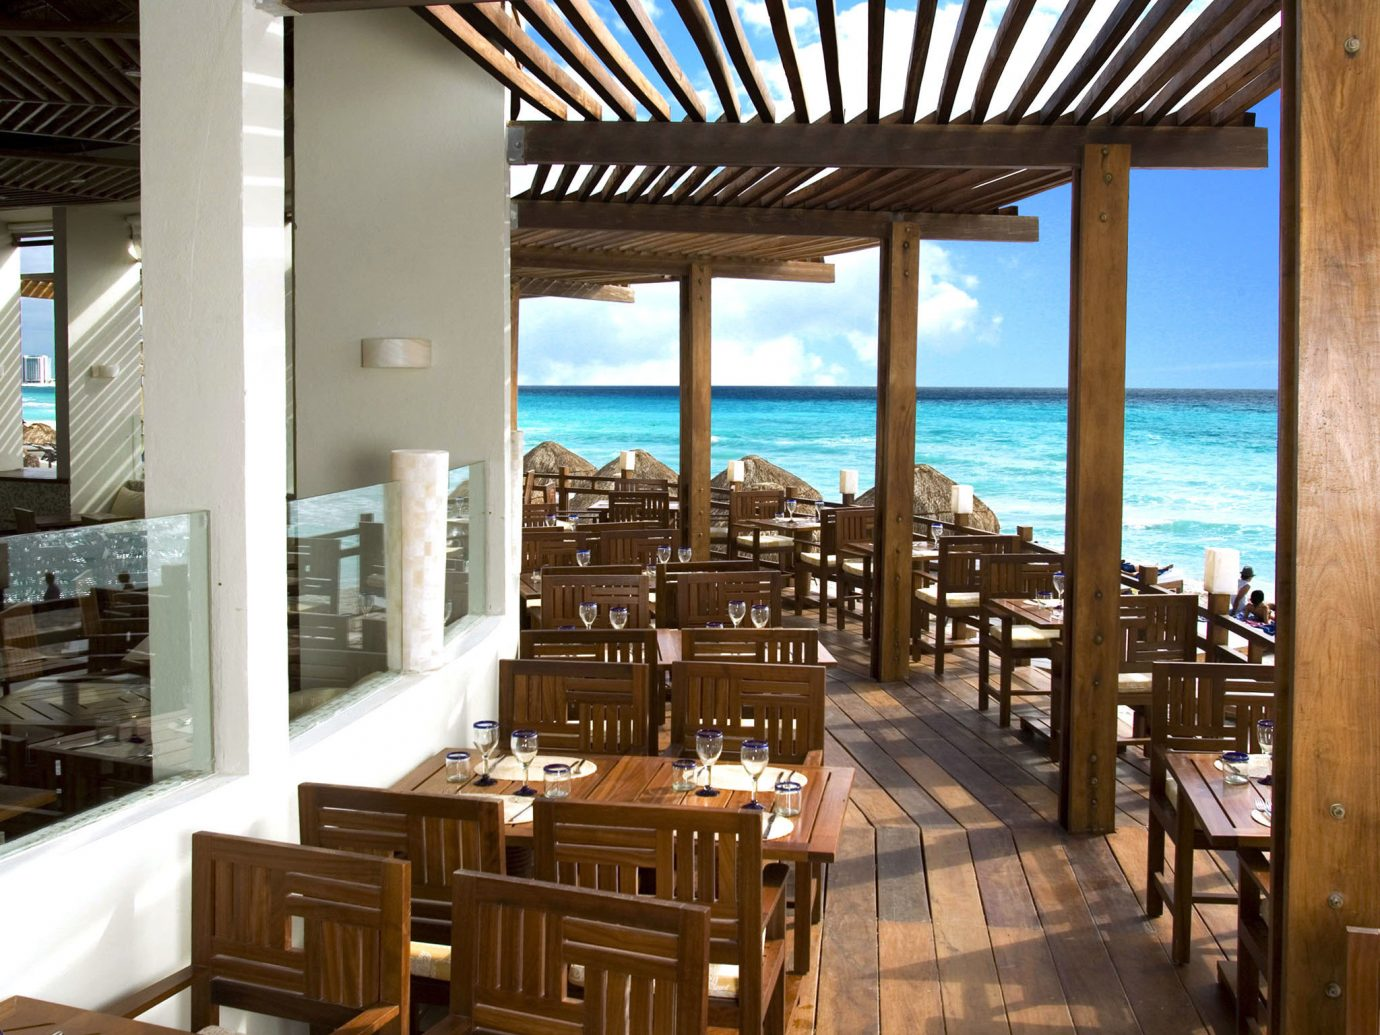 Outdoor restaurant at ME Cancun, Mexico